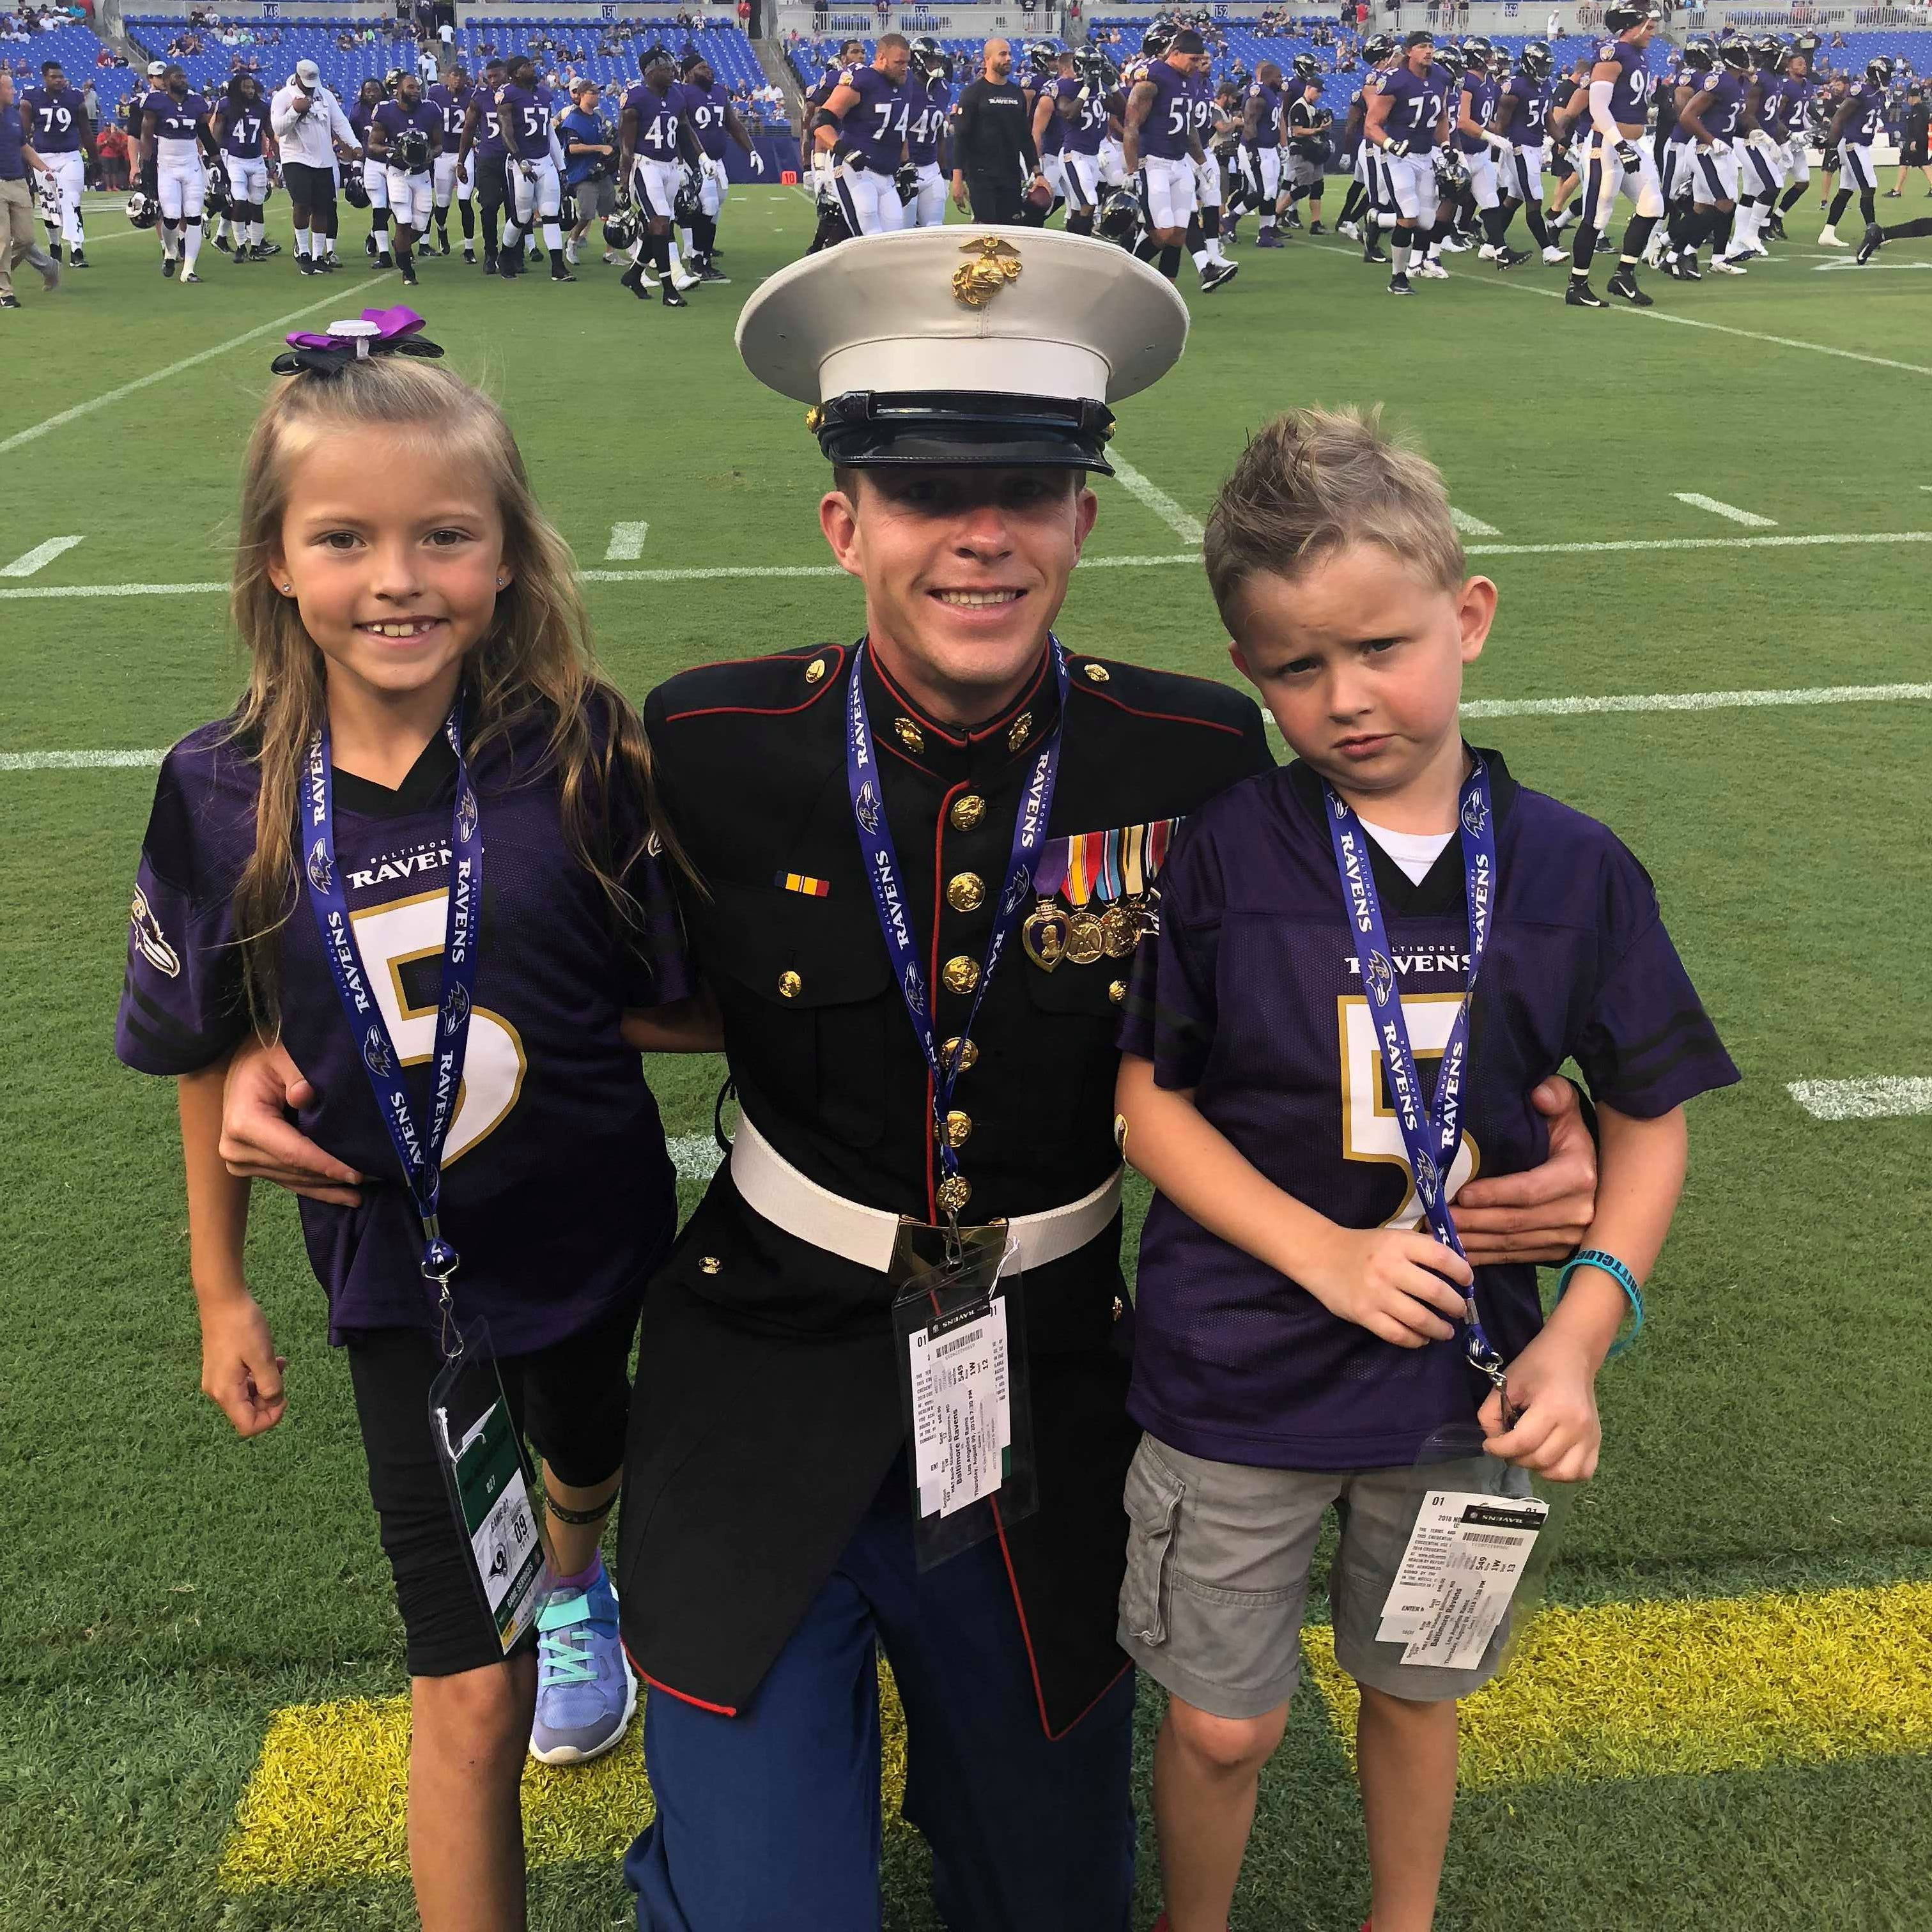 Greencastle man honored as a 'hometown hero' at Baltimore Ravens game